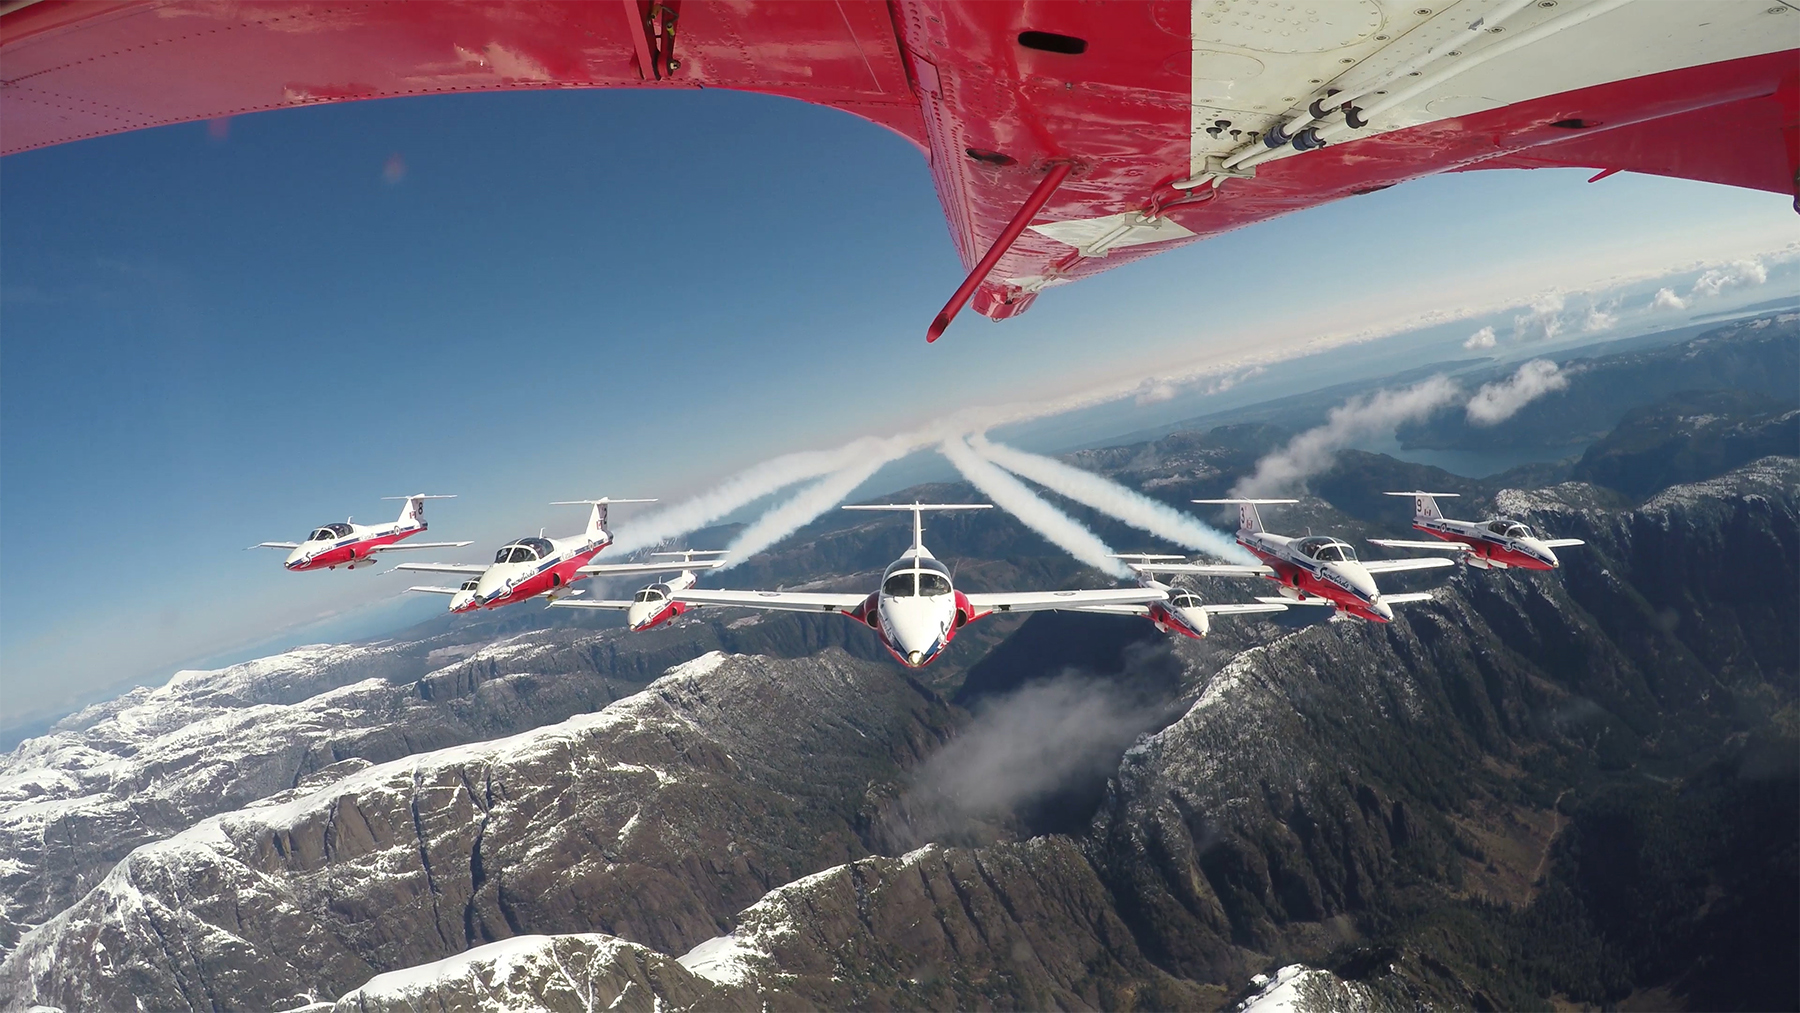 Practising over the mountains of British Columbia in April 2015, nine Royal Canadian Air Force Snowbirds are captured by the TankCam mounted on the belly of the Team Lead's aircraft. PHOTO: Snowbirds TankCam